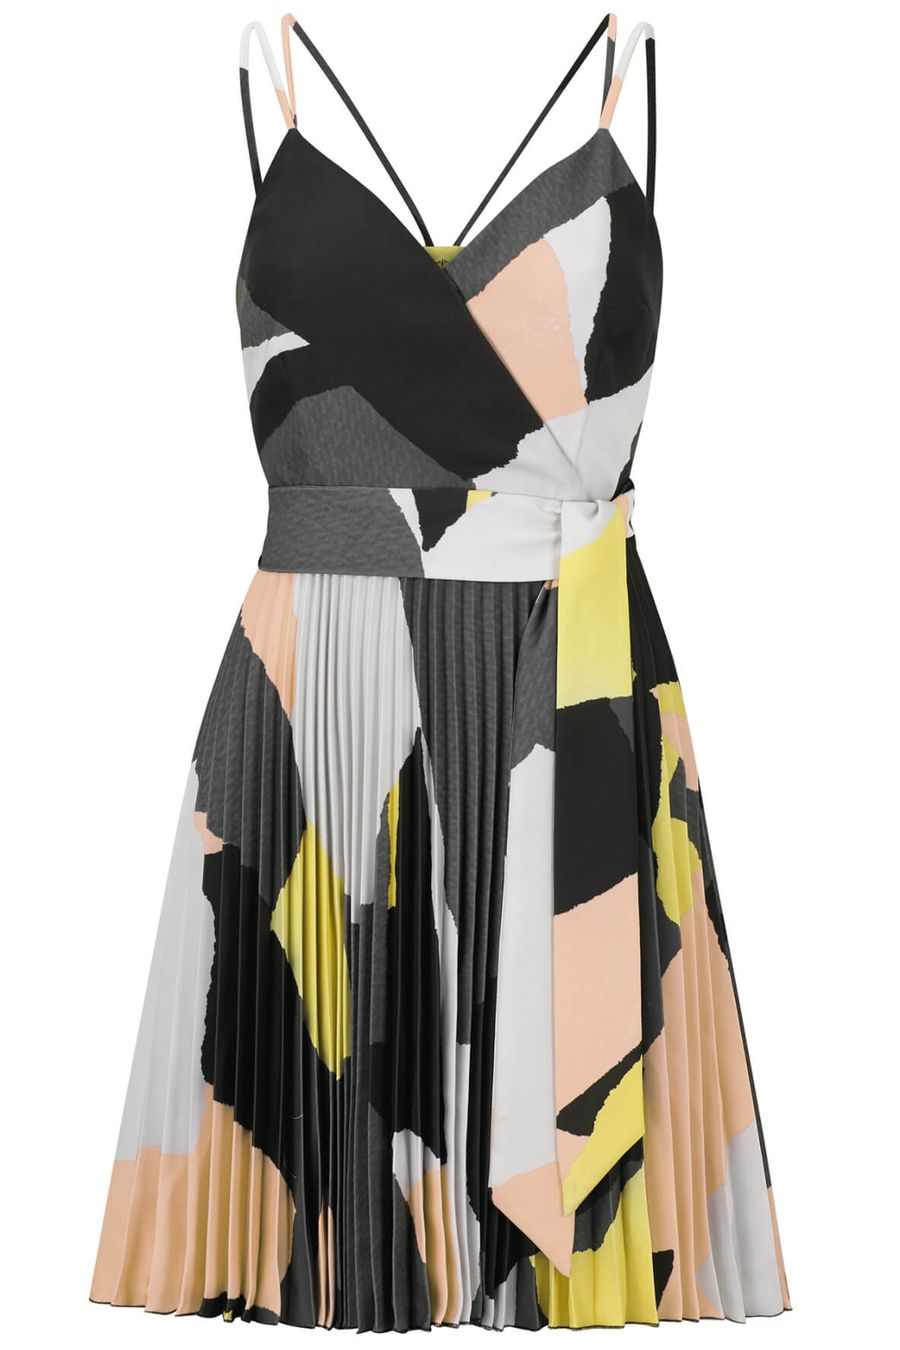 Style Theory_outline-camouflage-print-pleated-skirt-dress-1